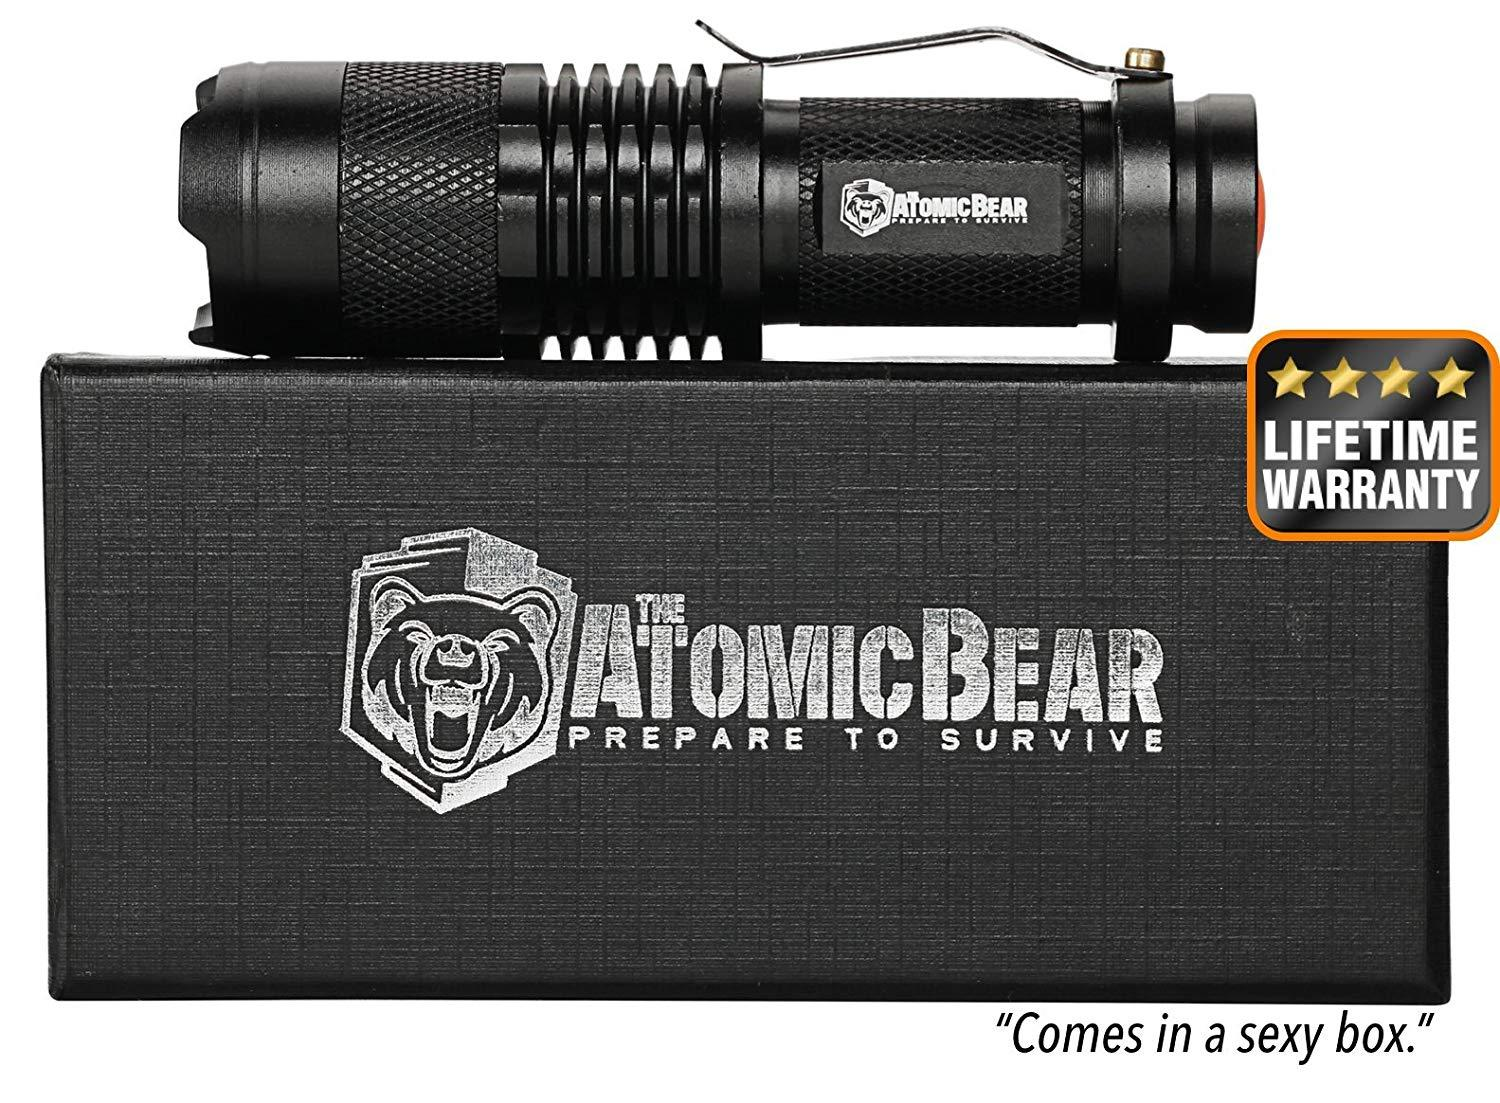 What Does Nitecore Flashlight Cost?